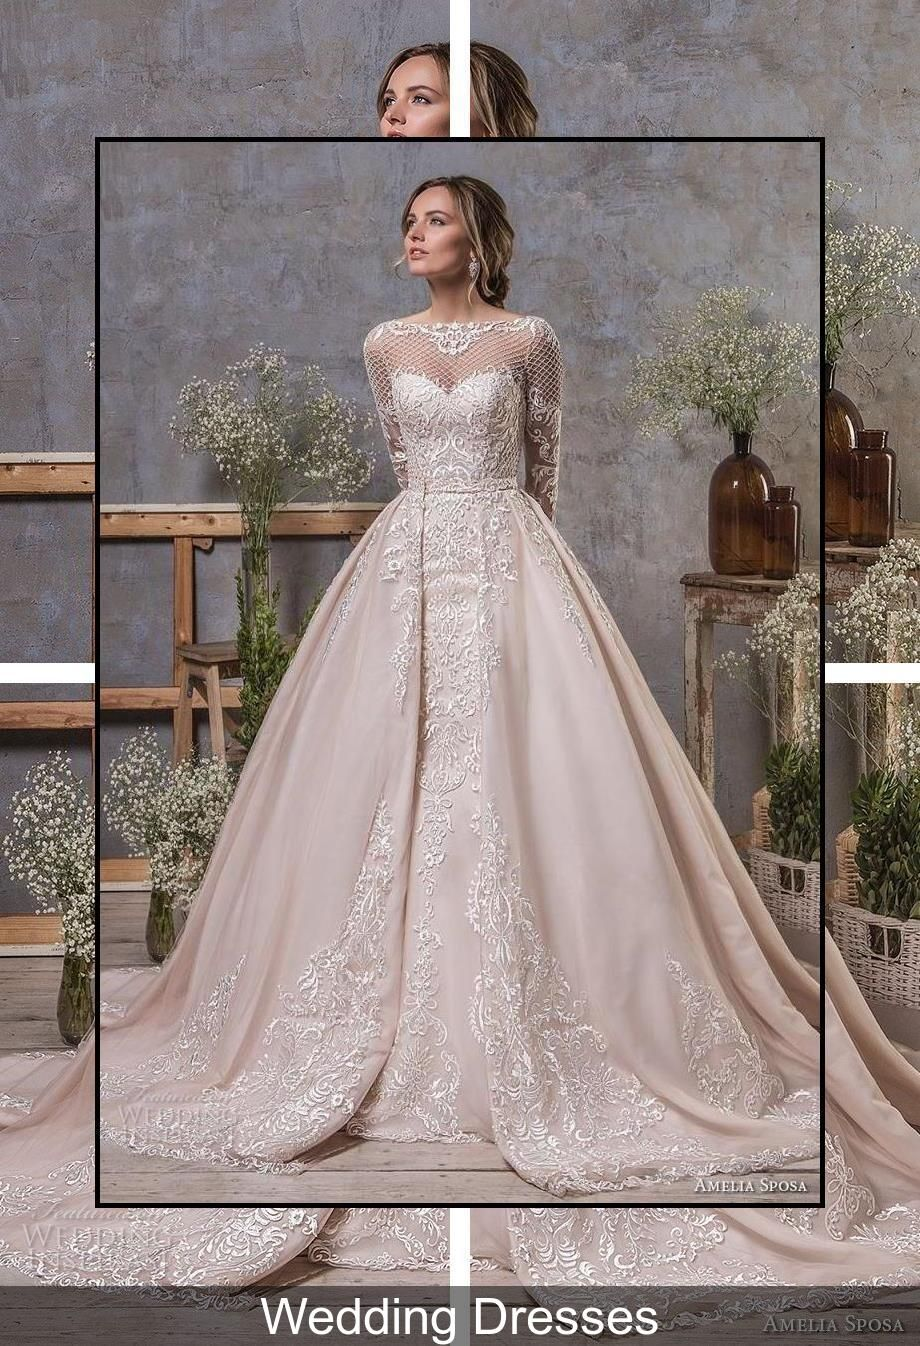 Antique Wedding Dresses Wedding Gowns Near Me Brided In 2020 Expensive Wedding Dress Colored Wedding Dresses Ball Gowns Wedding,Special Occasion Summer Truworths Dresses For Weddings